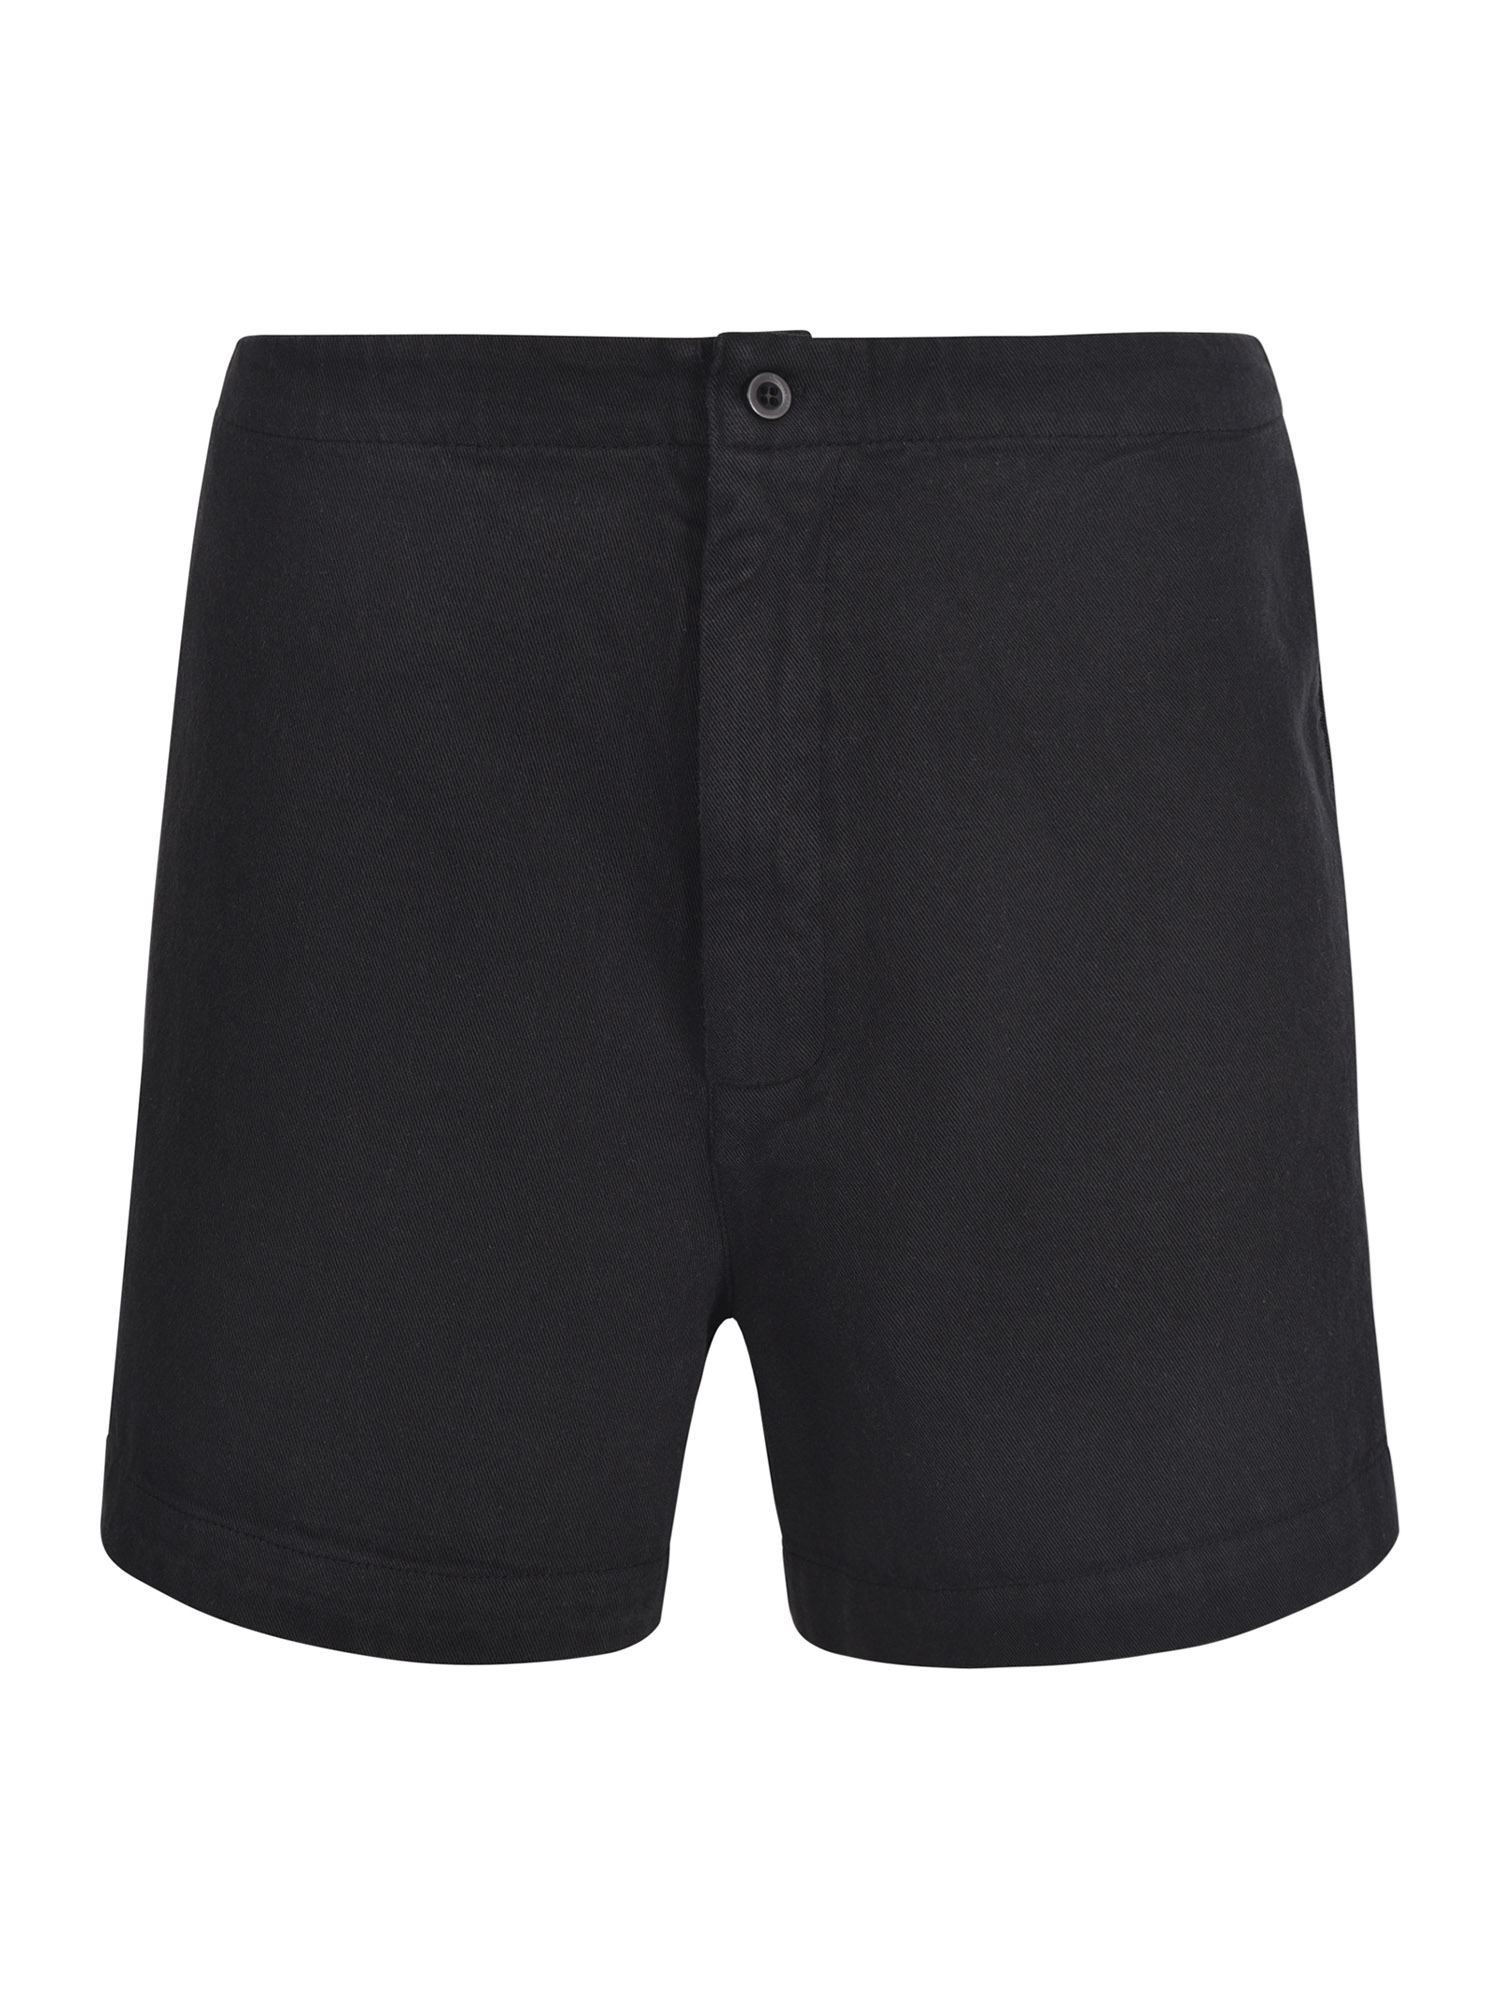 Labo.art COTTON SHORTS IN BLACK